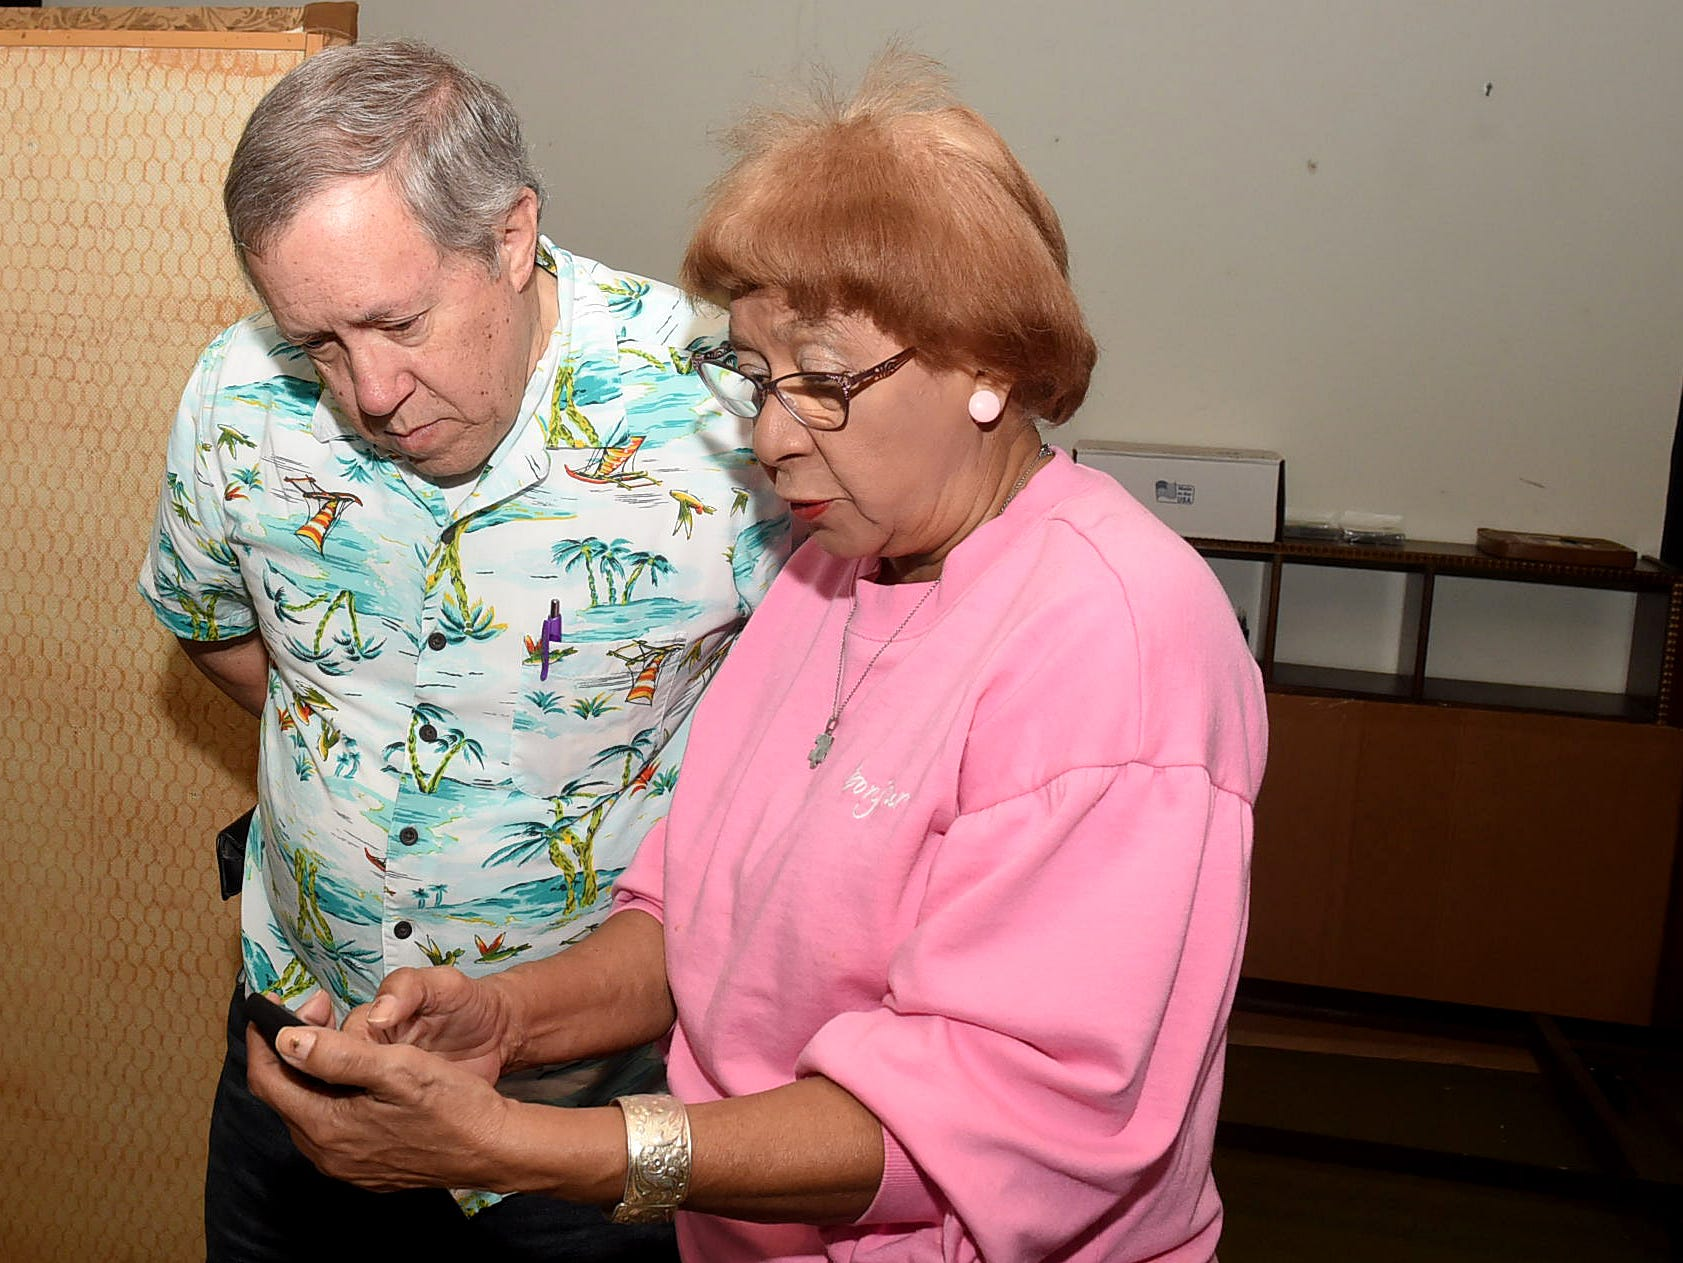 Monthly meeting of the St. Landry Parish Genealogical Society was held Saturday at the Opelousas Public Library.